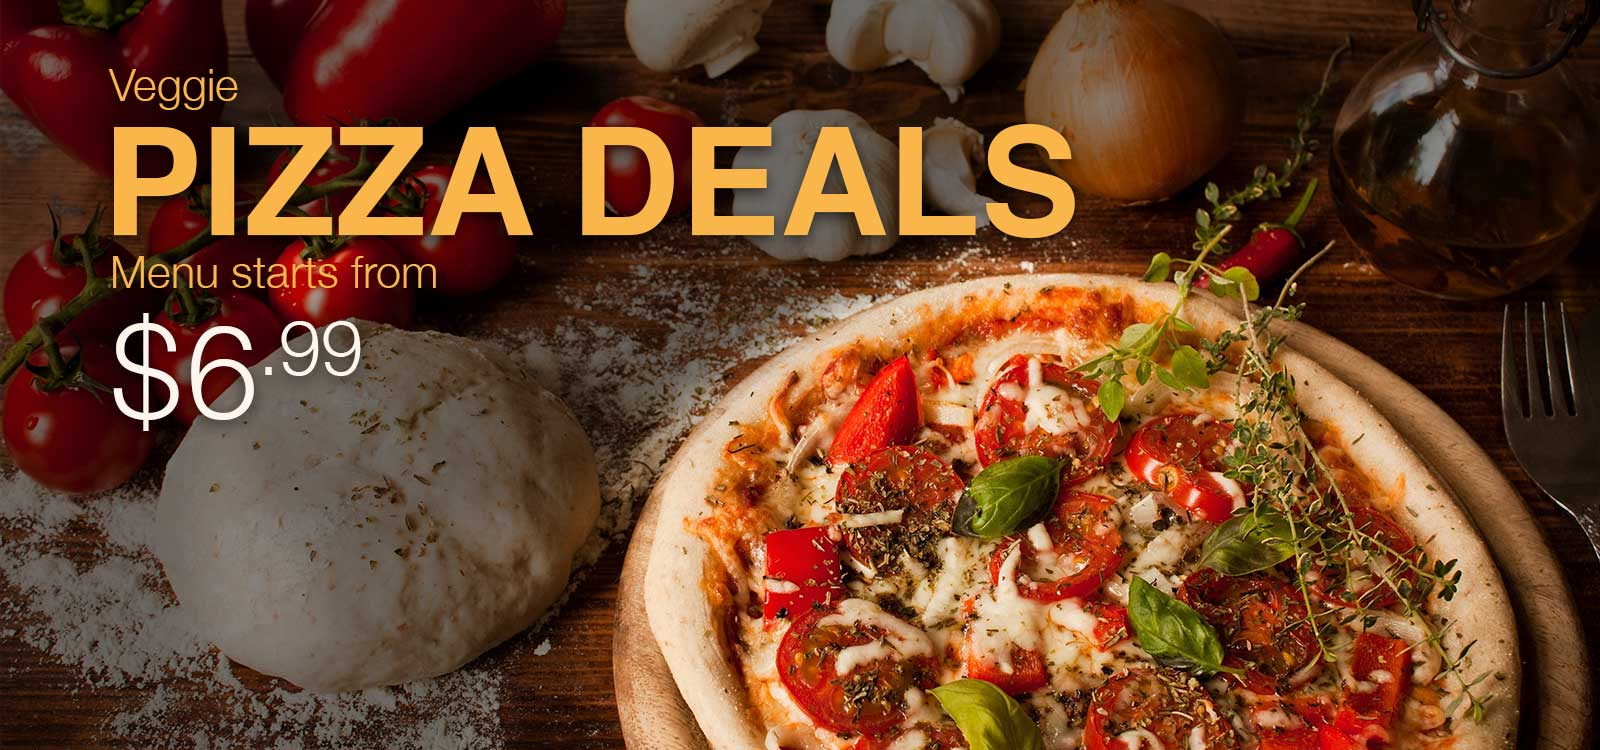 Veggie Planet Deal: Veggie Pizza deals starting from $6.99